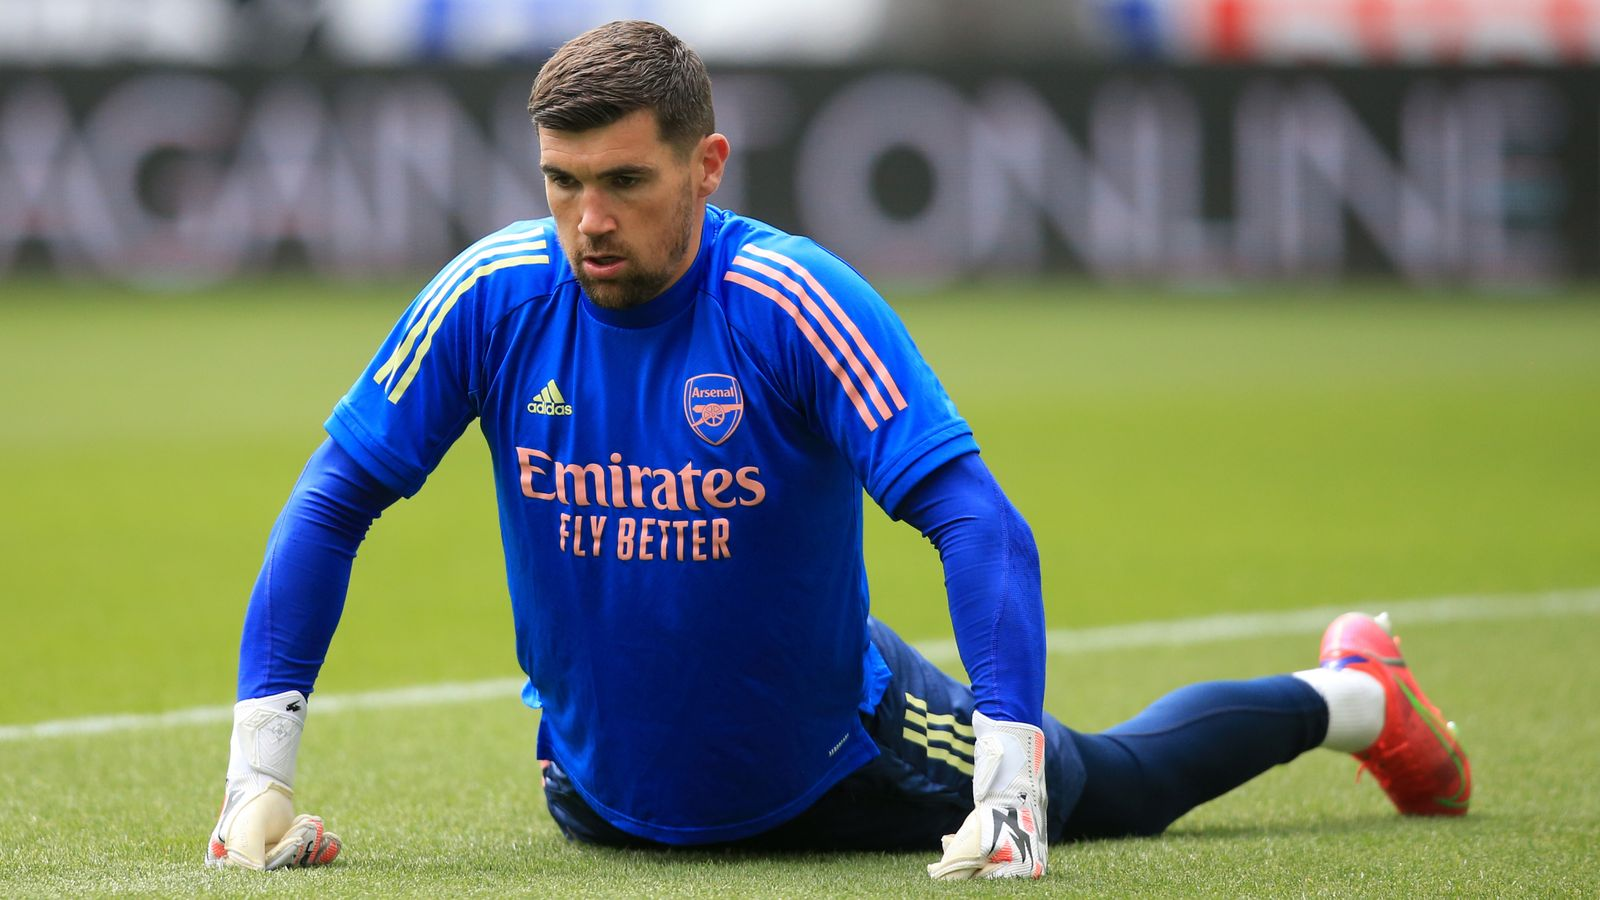 Mat Ryan: Brighton goalkeeper close to signing for Real Sociedad after clubs agree undisclosed fee